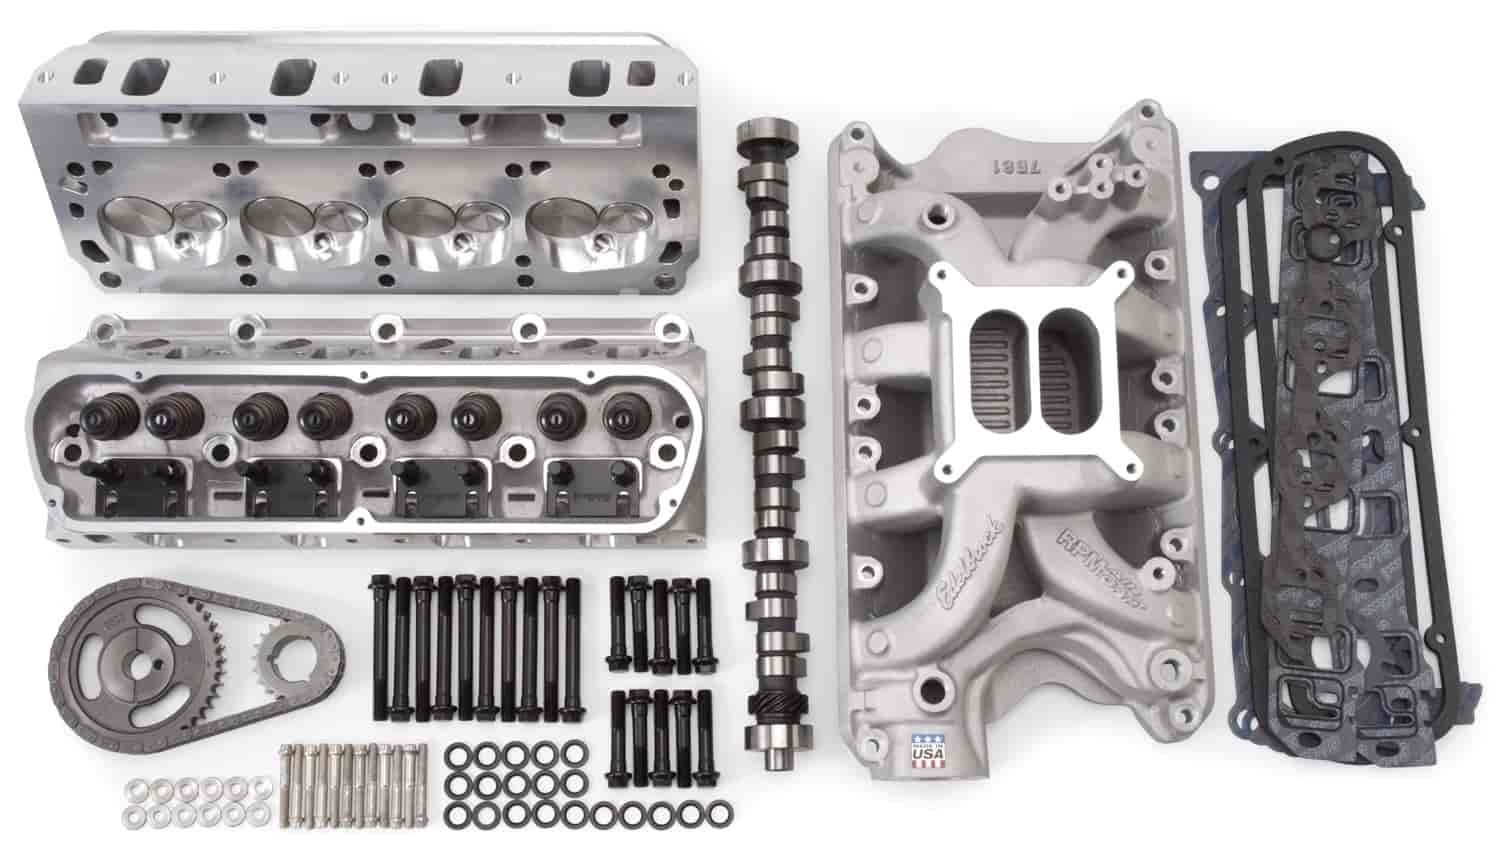 Edelbrock RPM Power Package Top End Kit for E-Boss Small Block Ford 302  with Cleveland Heads